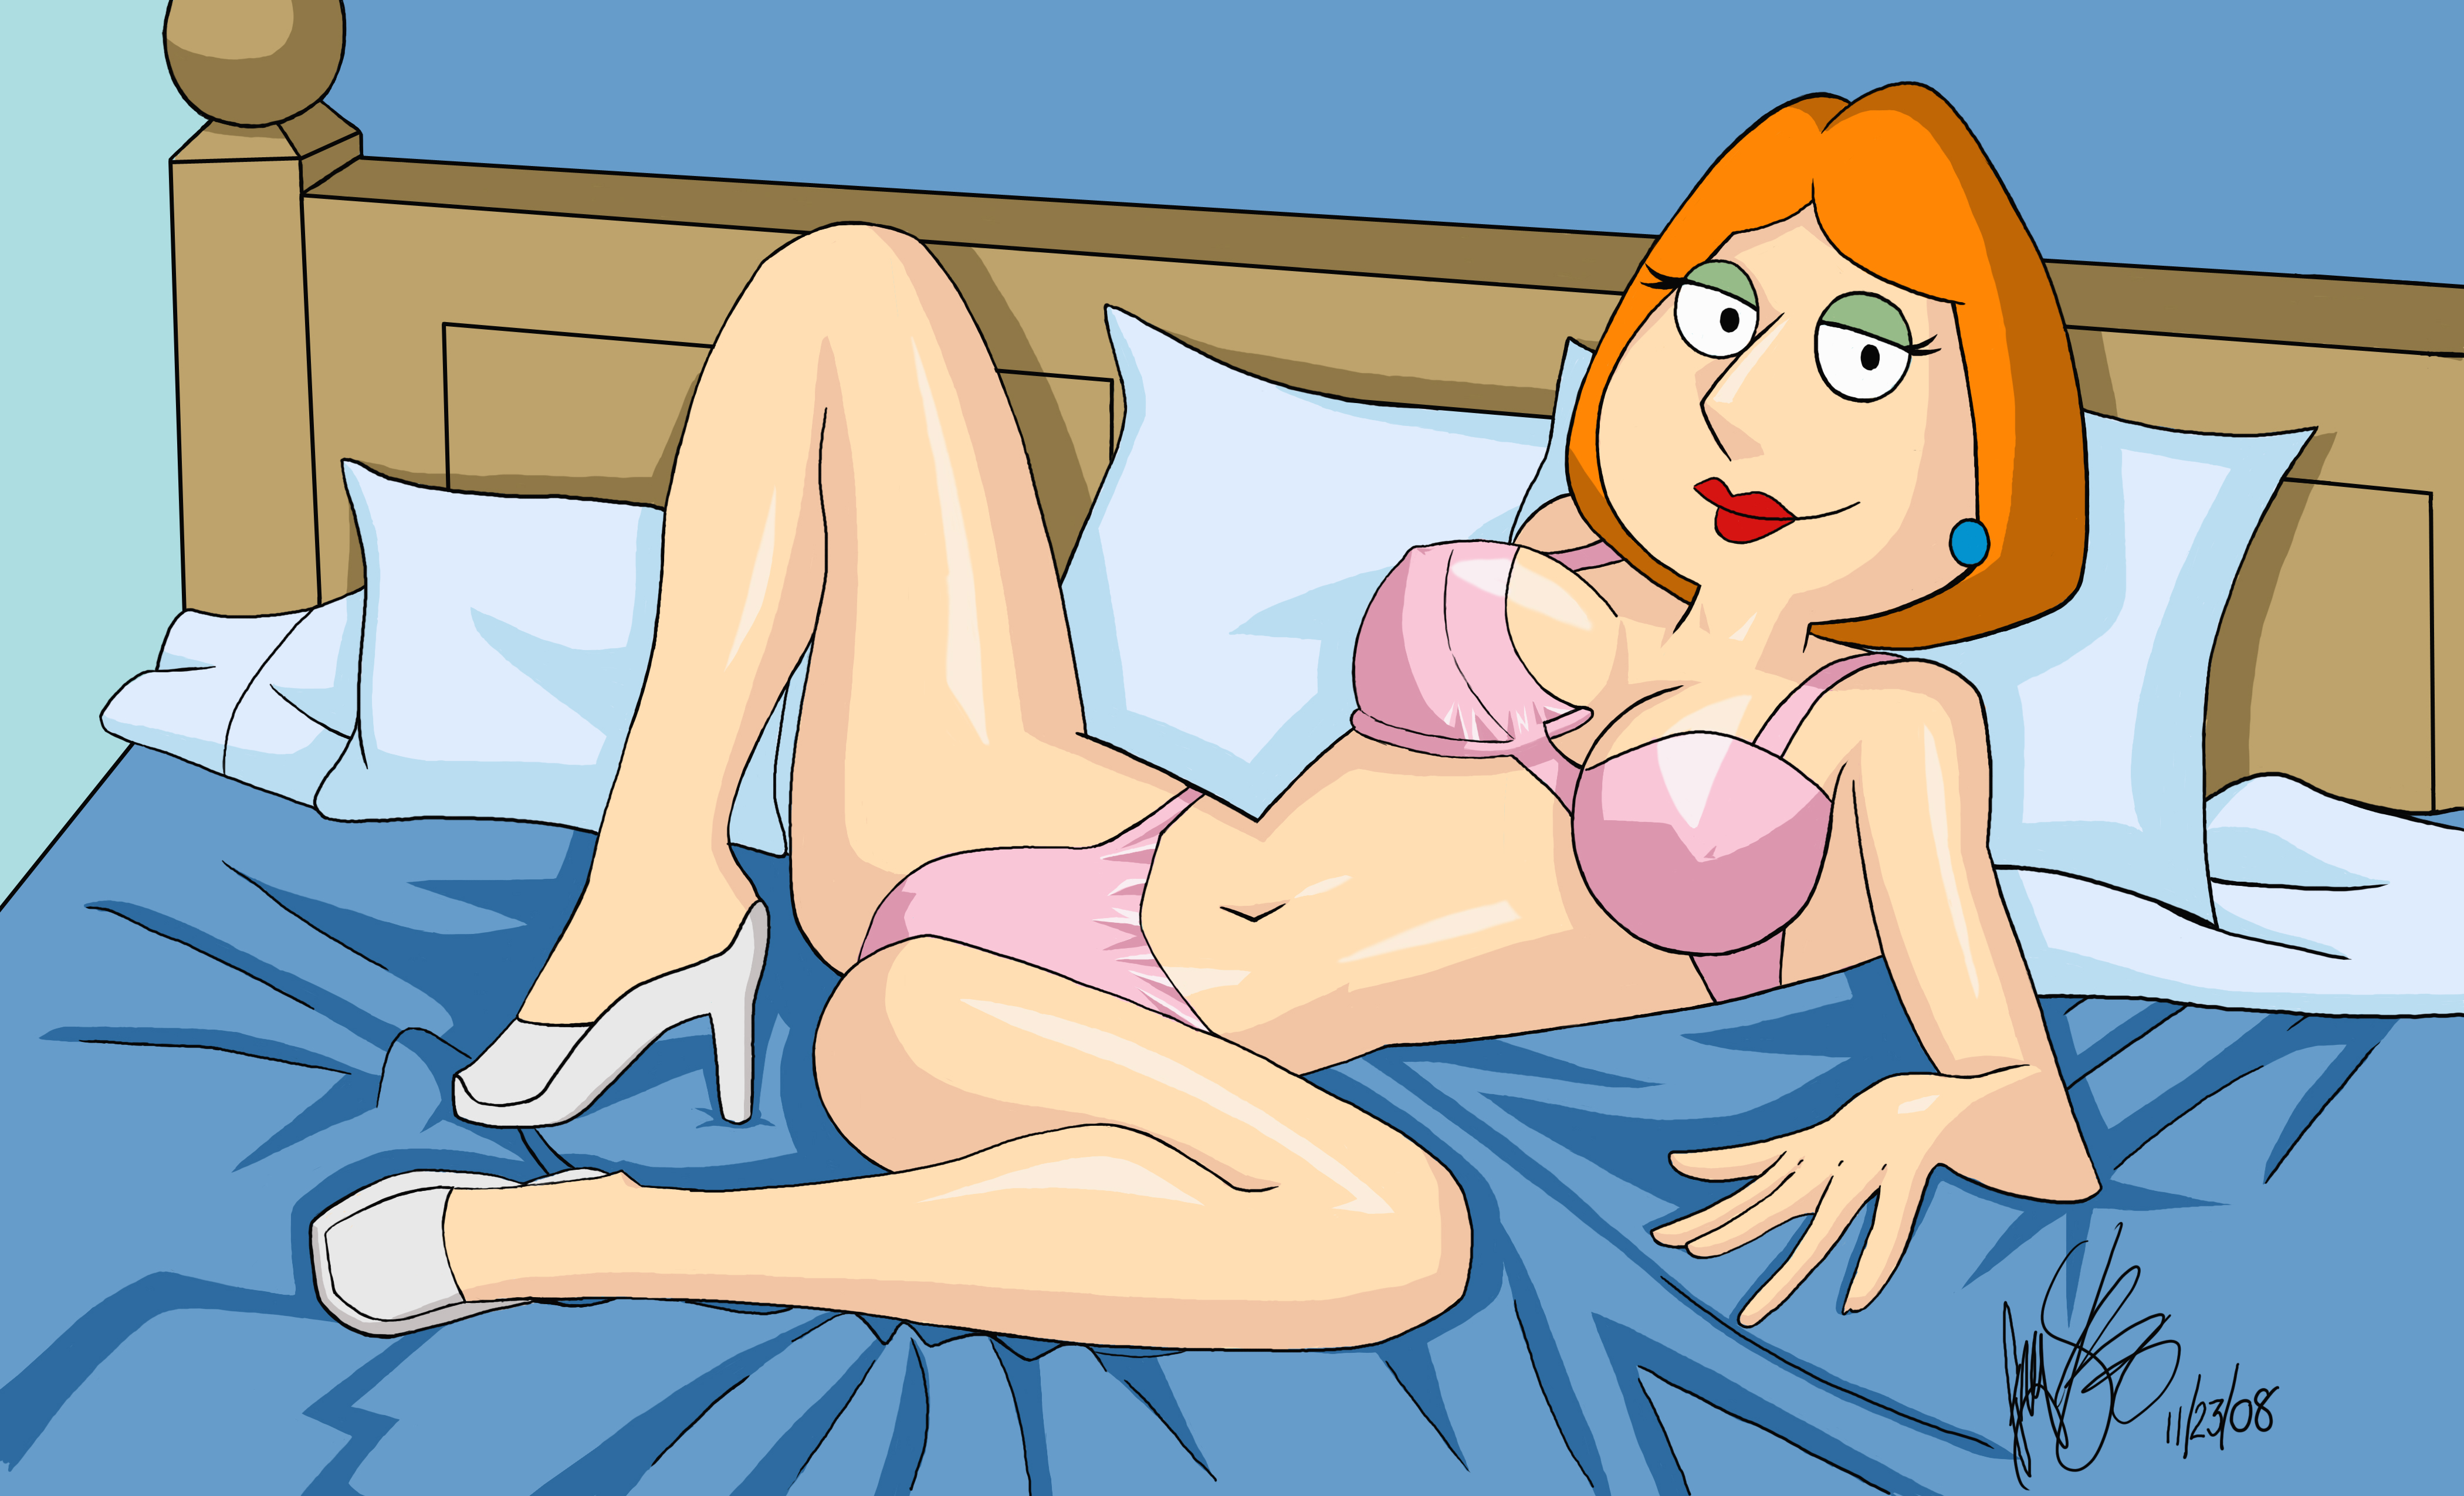 With lois griffin naked sexy excellent idea